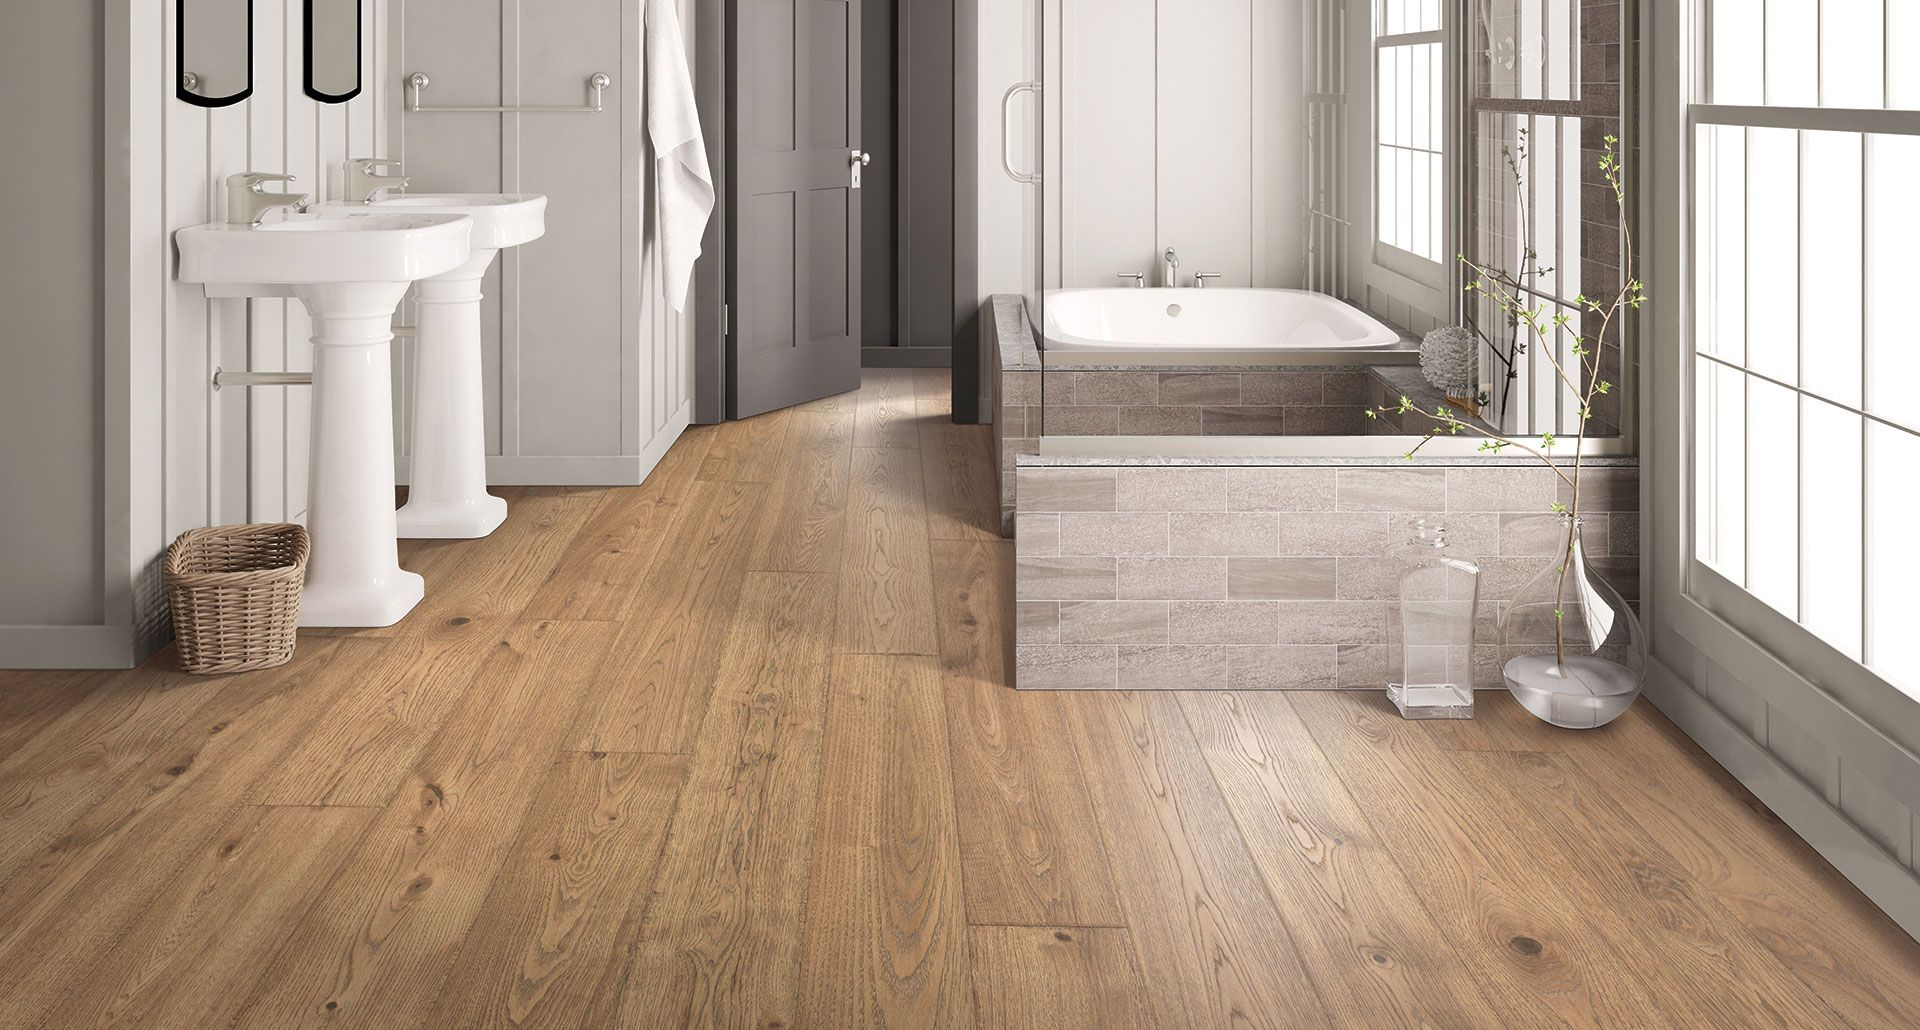 Brier Creek Oak Laminate Floor Natural Wood Look 12mm Thick 1 Strip Plank Laminate Flooring Oak Laminate Flooring Oak Laminate Waterproof Laminate Flooring